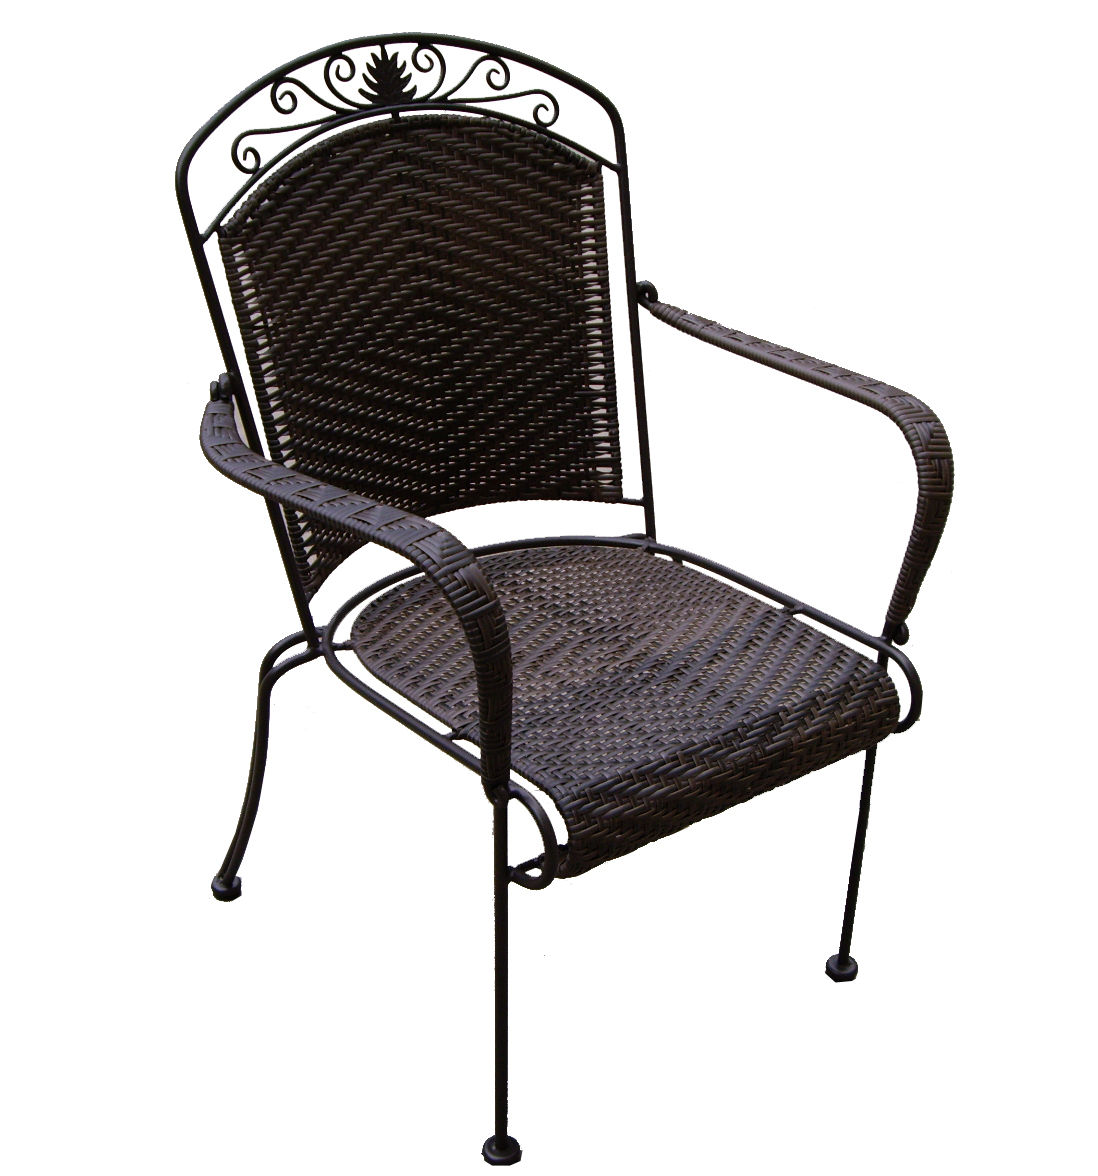 Wrought iron outdoor furniture from china bigfootglobal for Wrought iron furniture